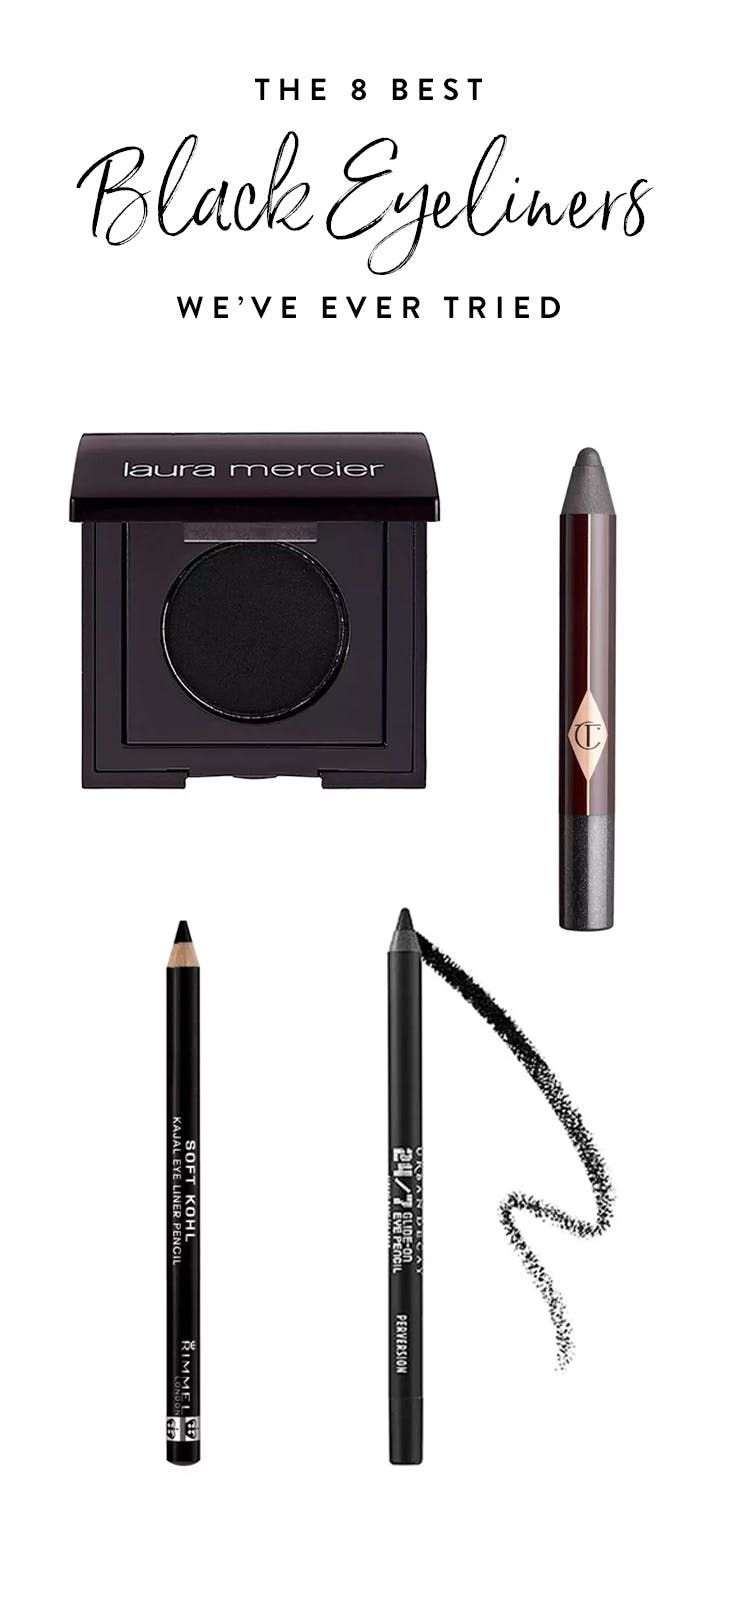 The 8 Best Black Eyeliners We've Ever Tried via @PureWow